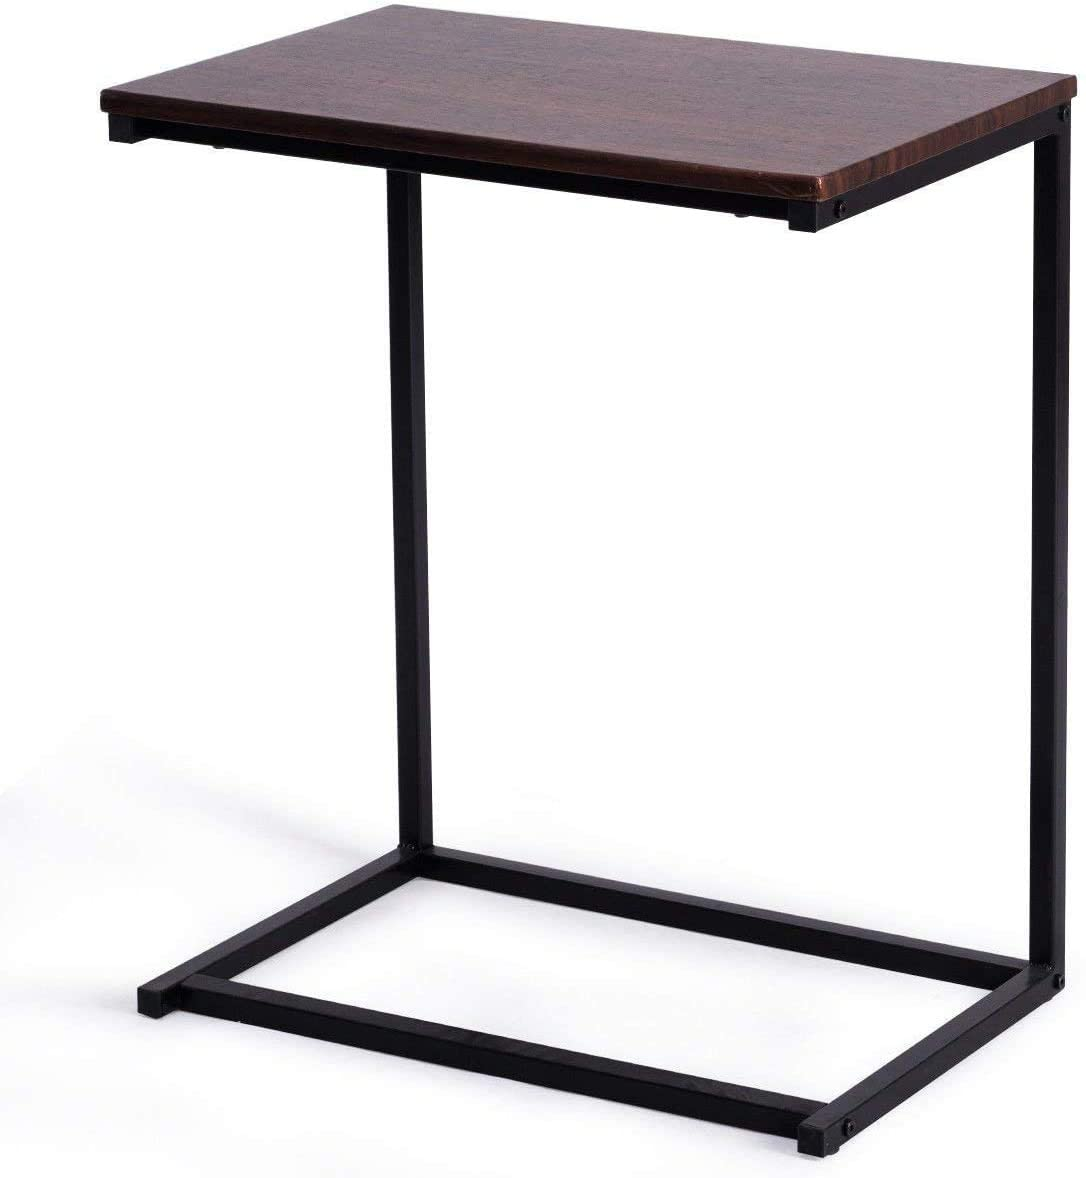 ARLIME End Table, C Shaped Laptop Holder, Side Table for Bed and Sofa, Coffee Tray and Portable Workstation, Over Bed Table